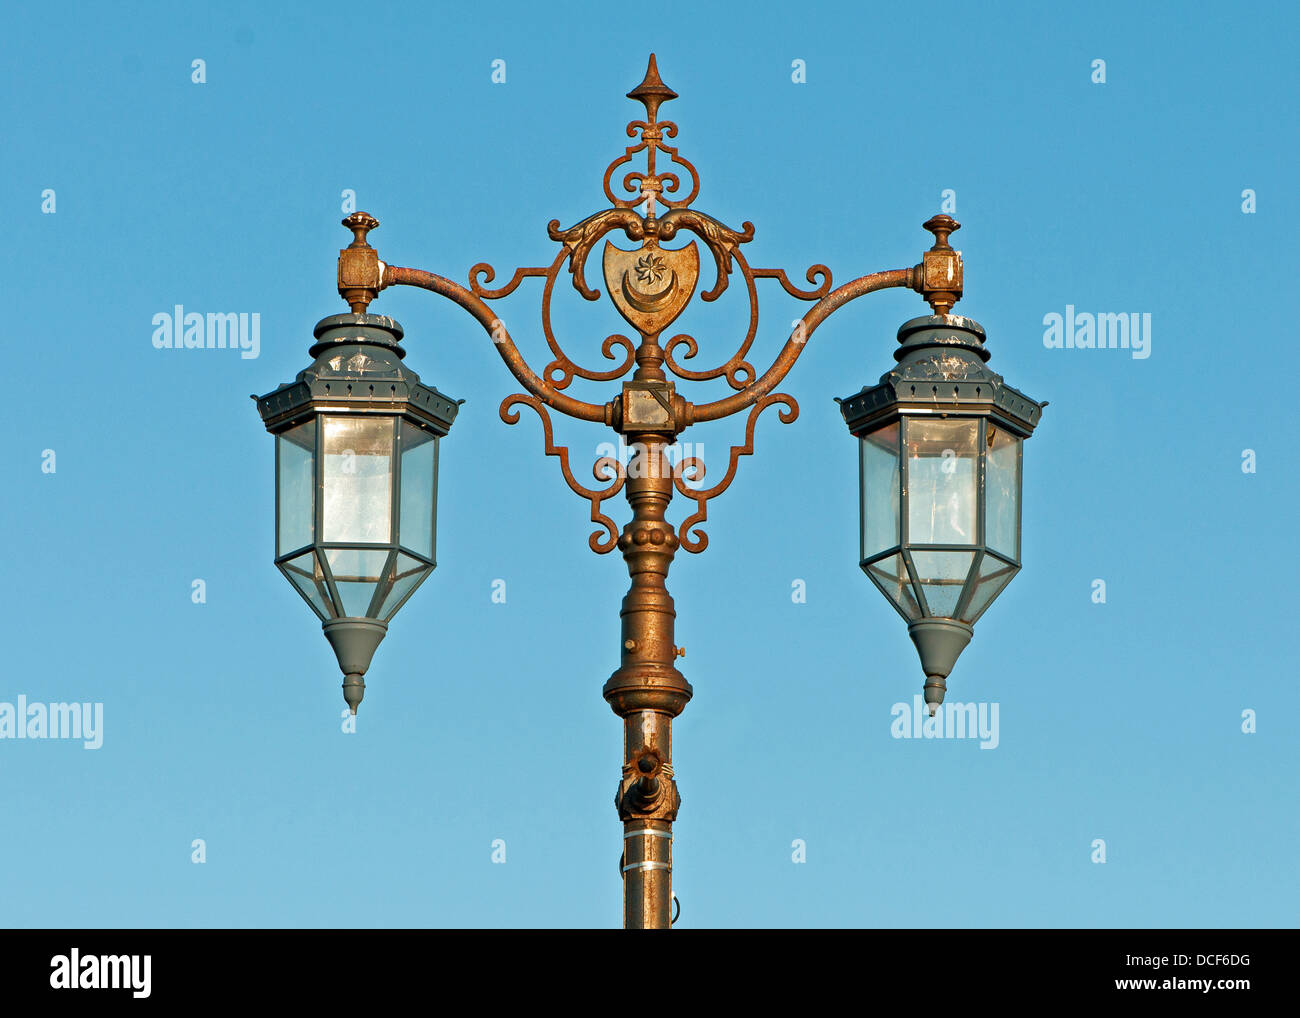 Ornate lamps on post - Stock Image